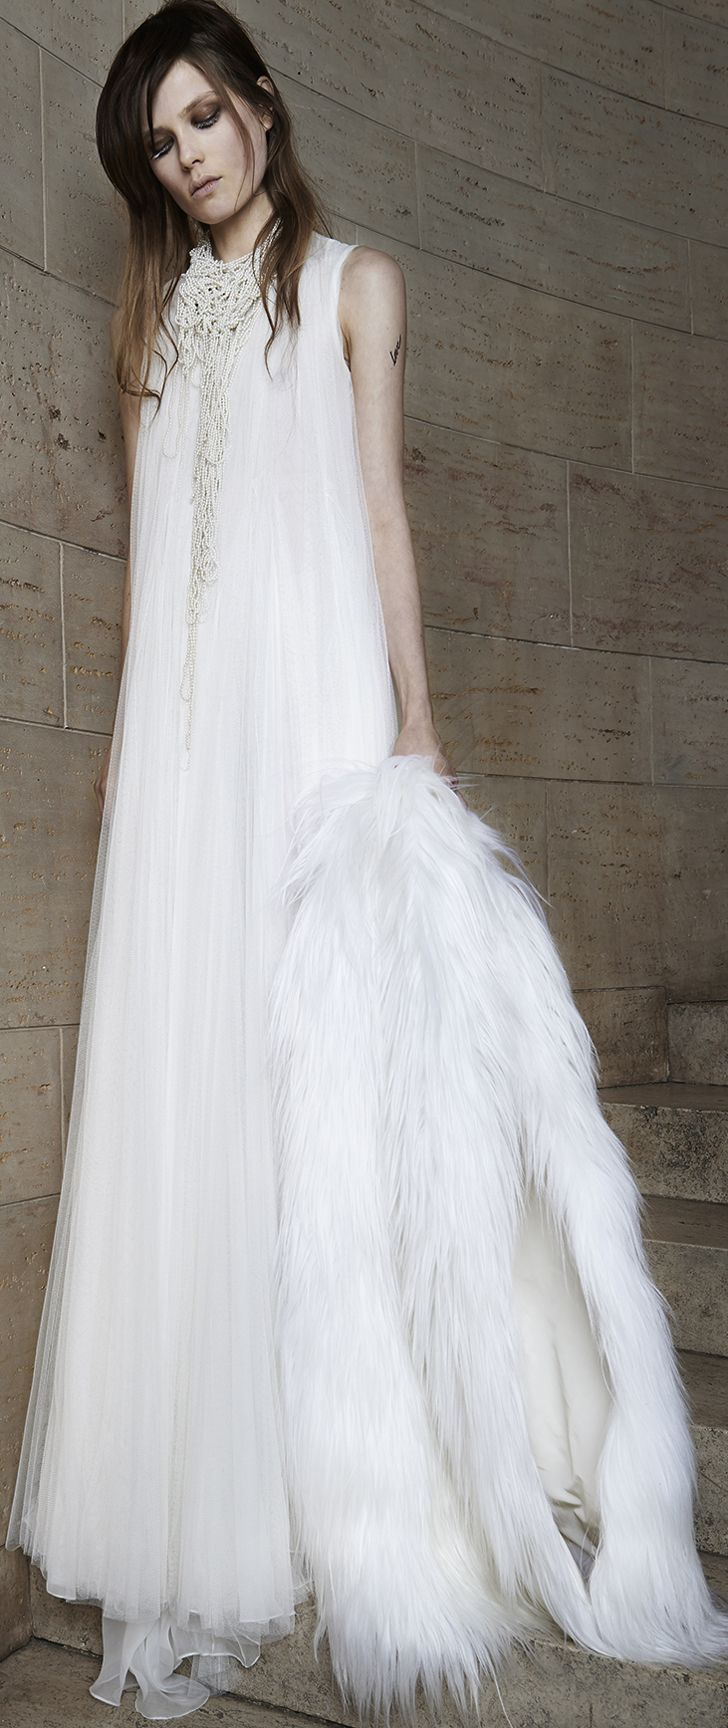 Vera Wang Wants To Seduce You With Her Wedding Gowns